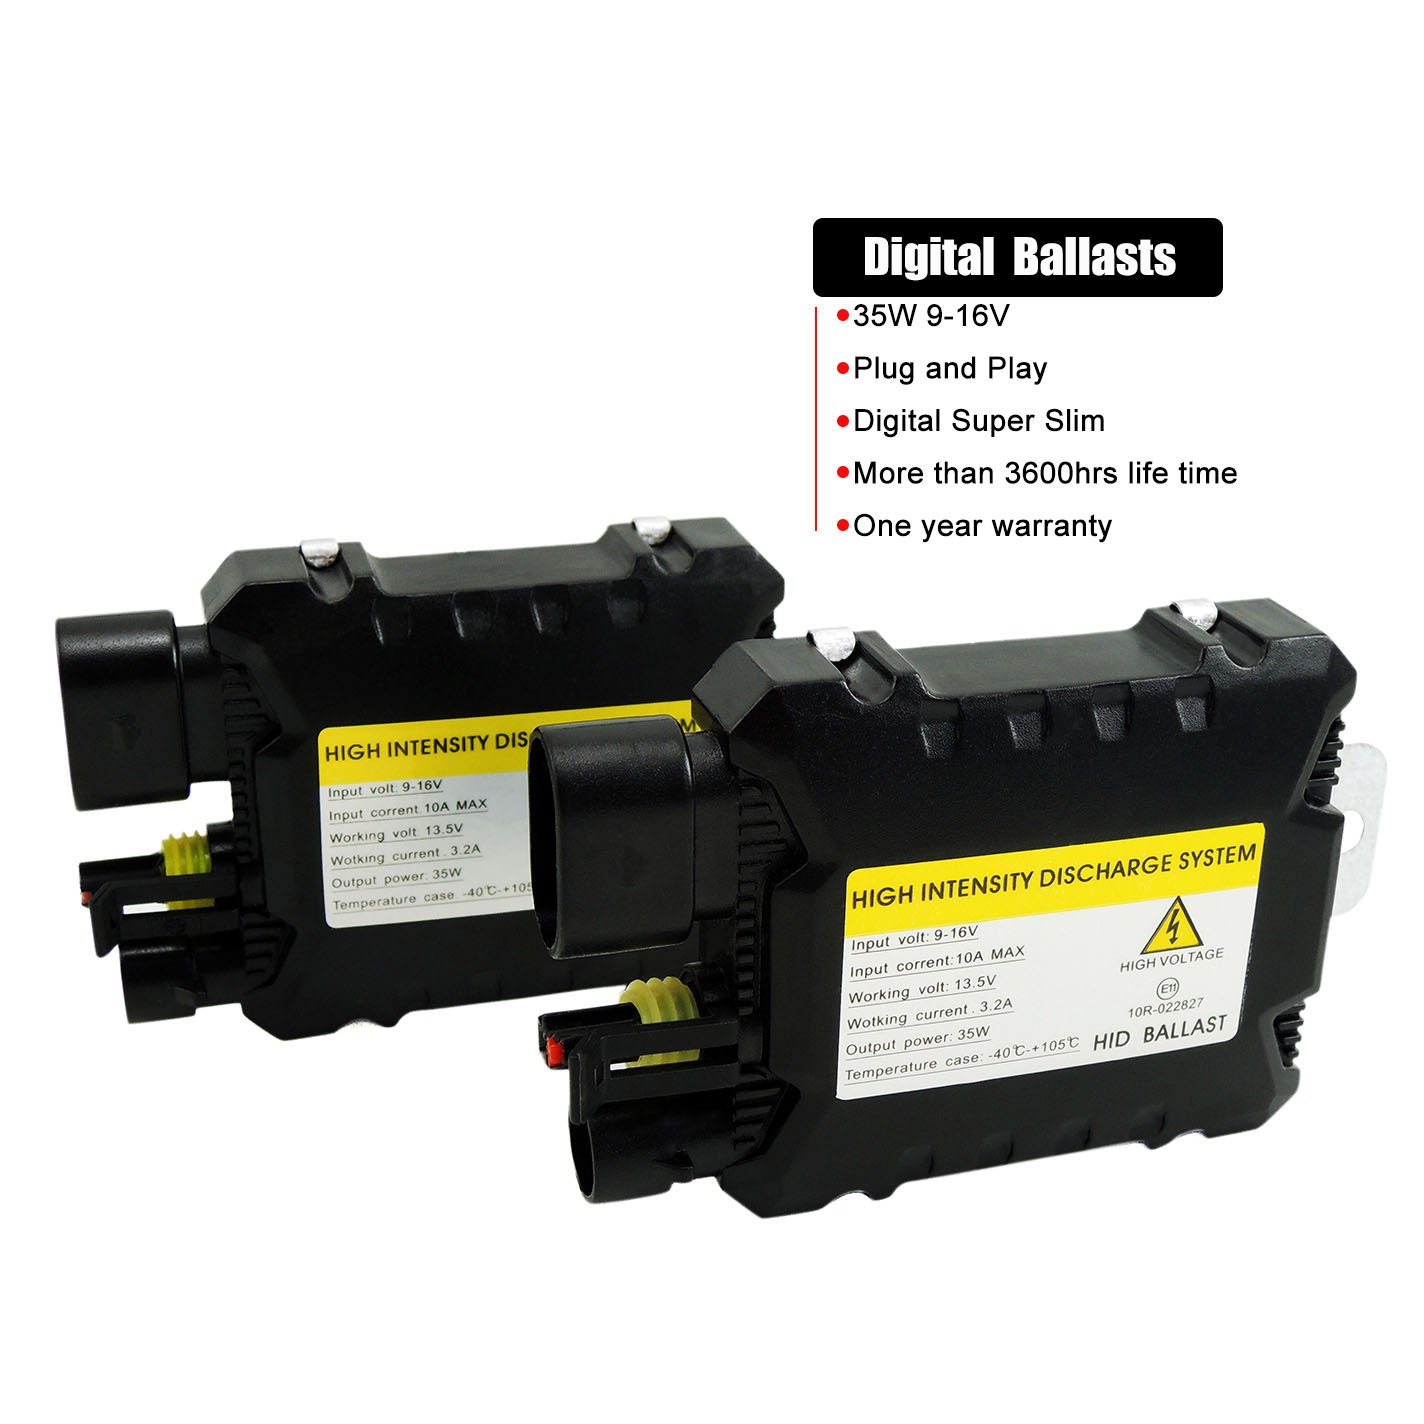 35w Wireless Hid Xenon Dc Ballast Discharge System For H1 H3 H7 H8 Ballasted Ignition Coilconsider This Circuit To Be Powered By A H13 H4 9005 Lighting Electrical Amazon Canada